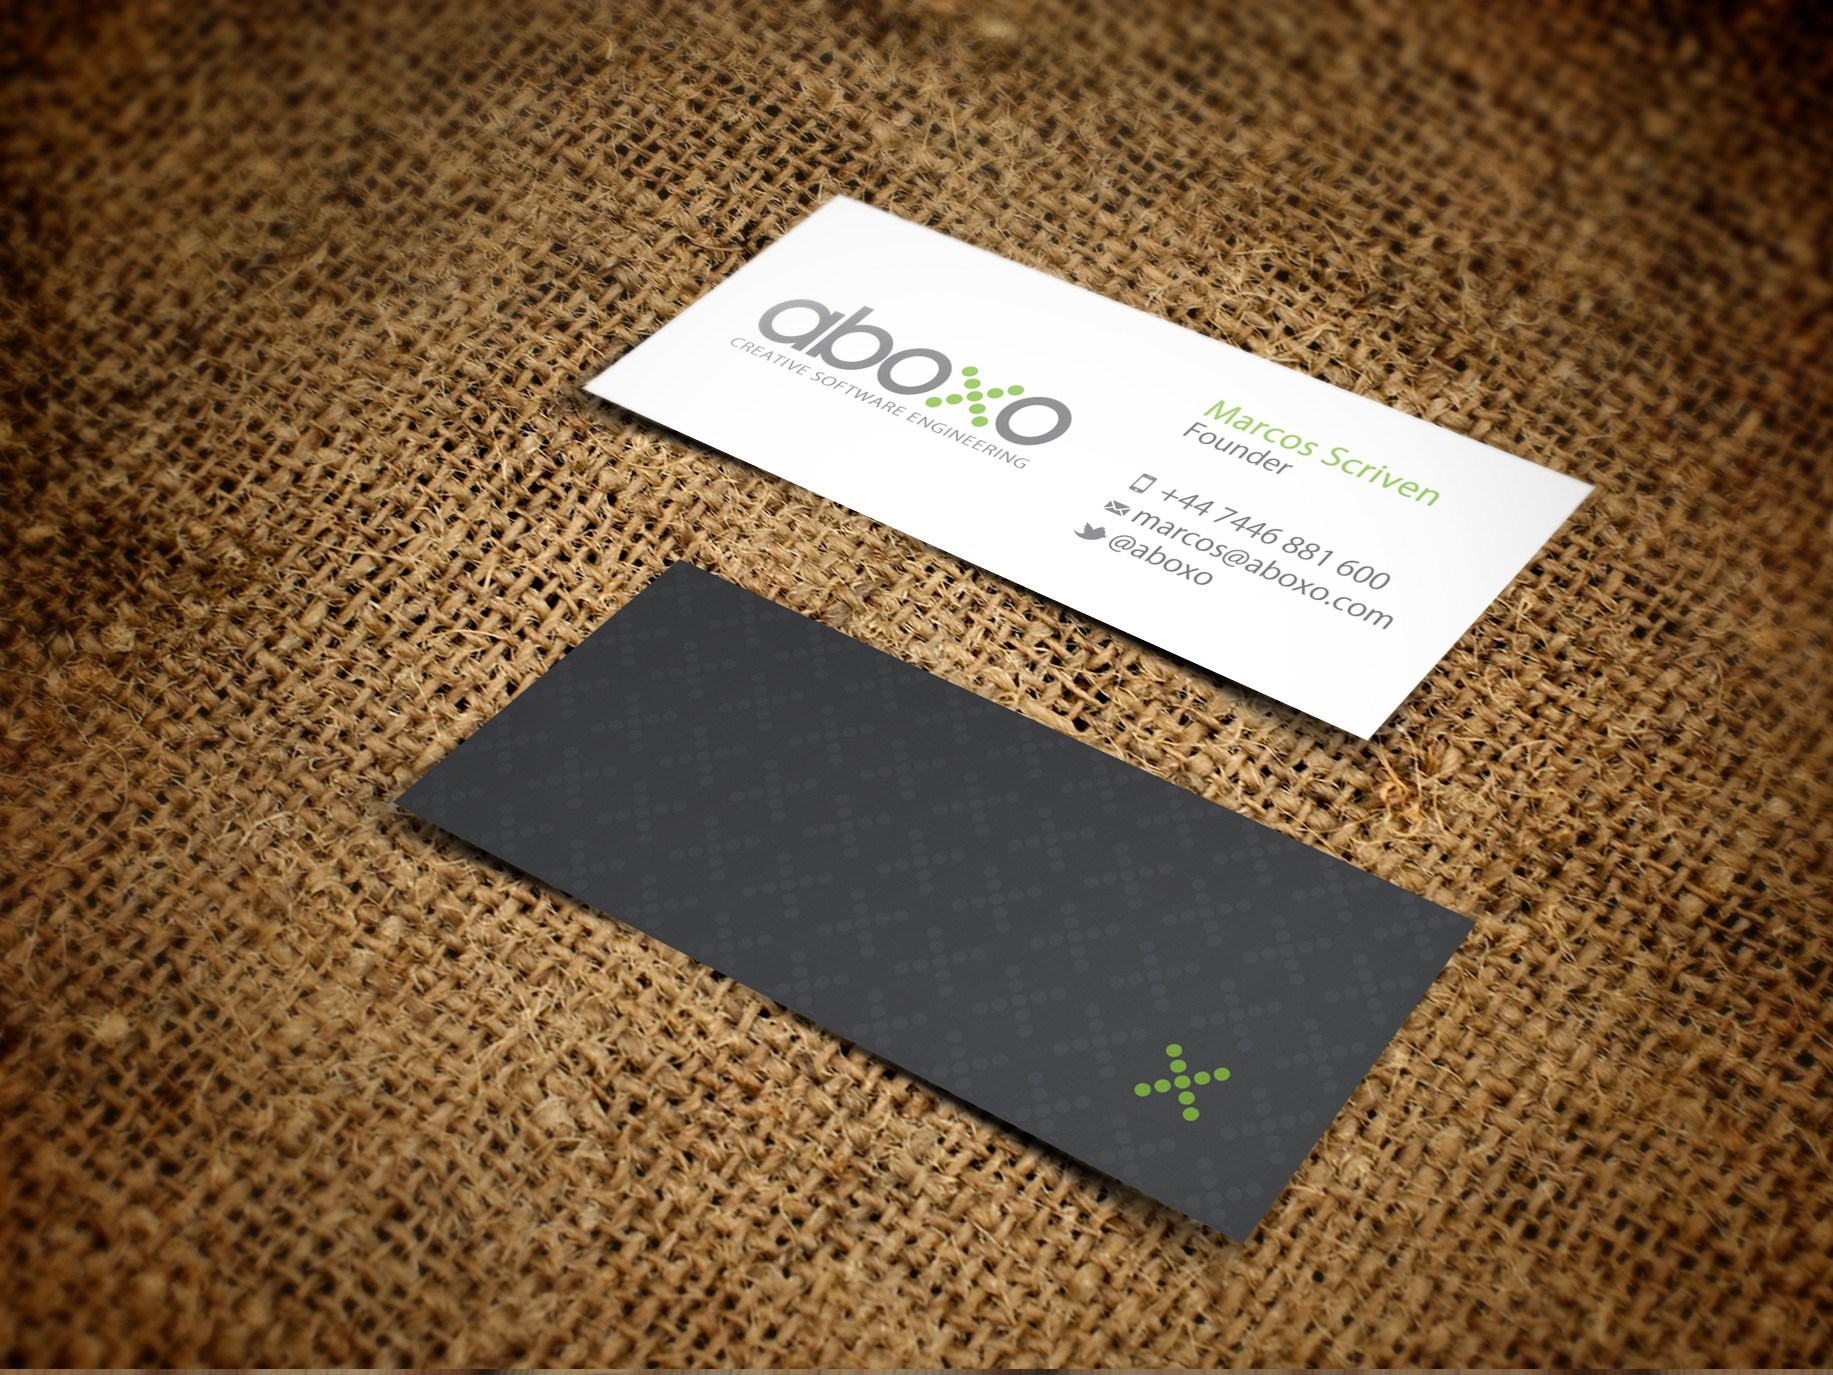 New stationery wanted for Aboxo Ltd.